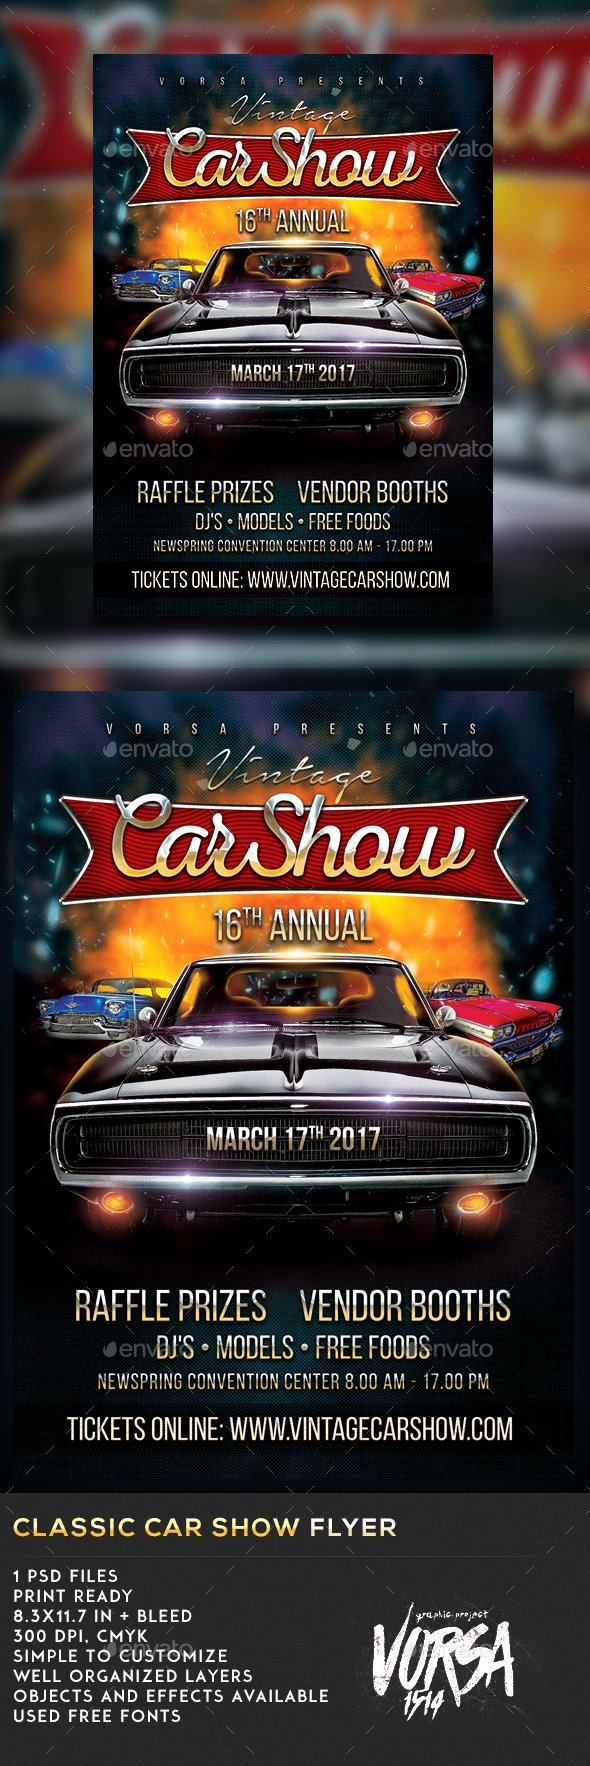 Car Show Flyer Template Luxury Classic Car Show Flyer by Vorsa